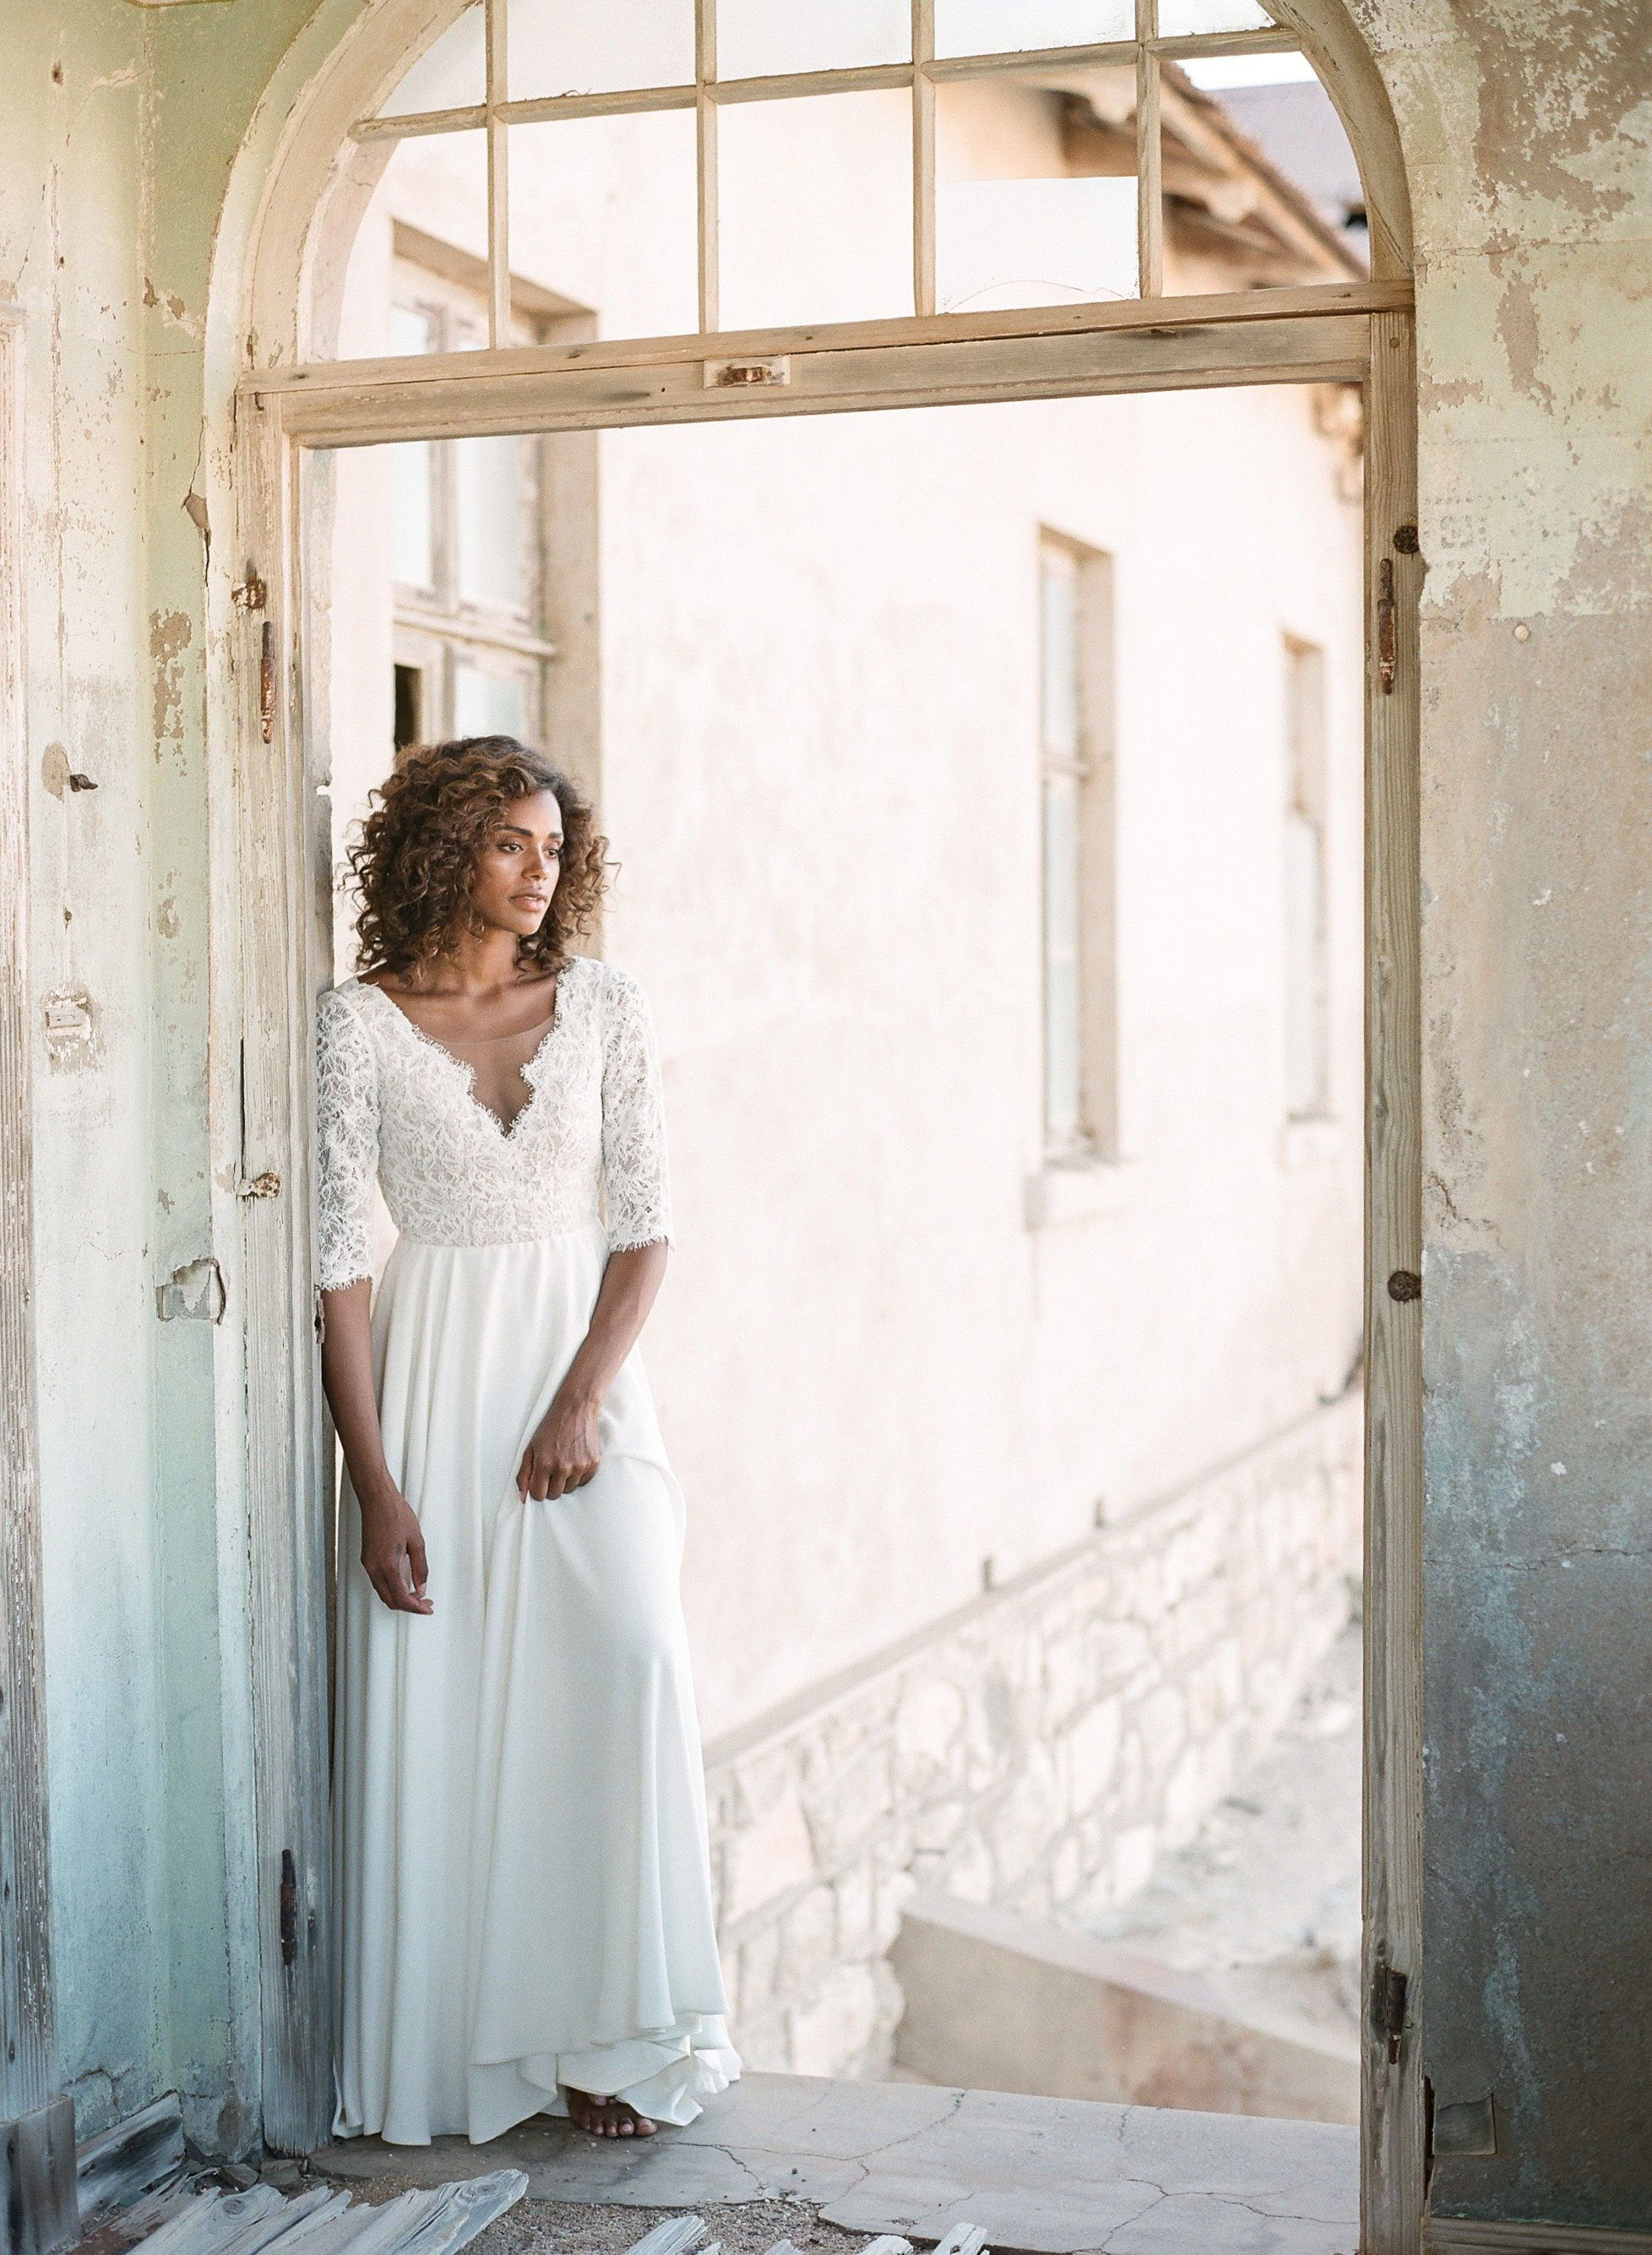 Truvelleus collection allanah by truvelle romantic wedding